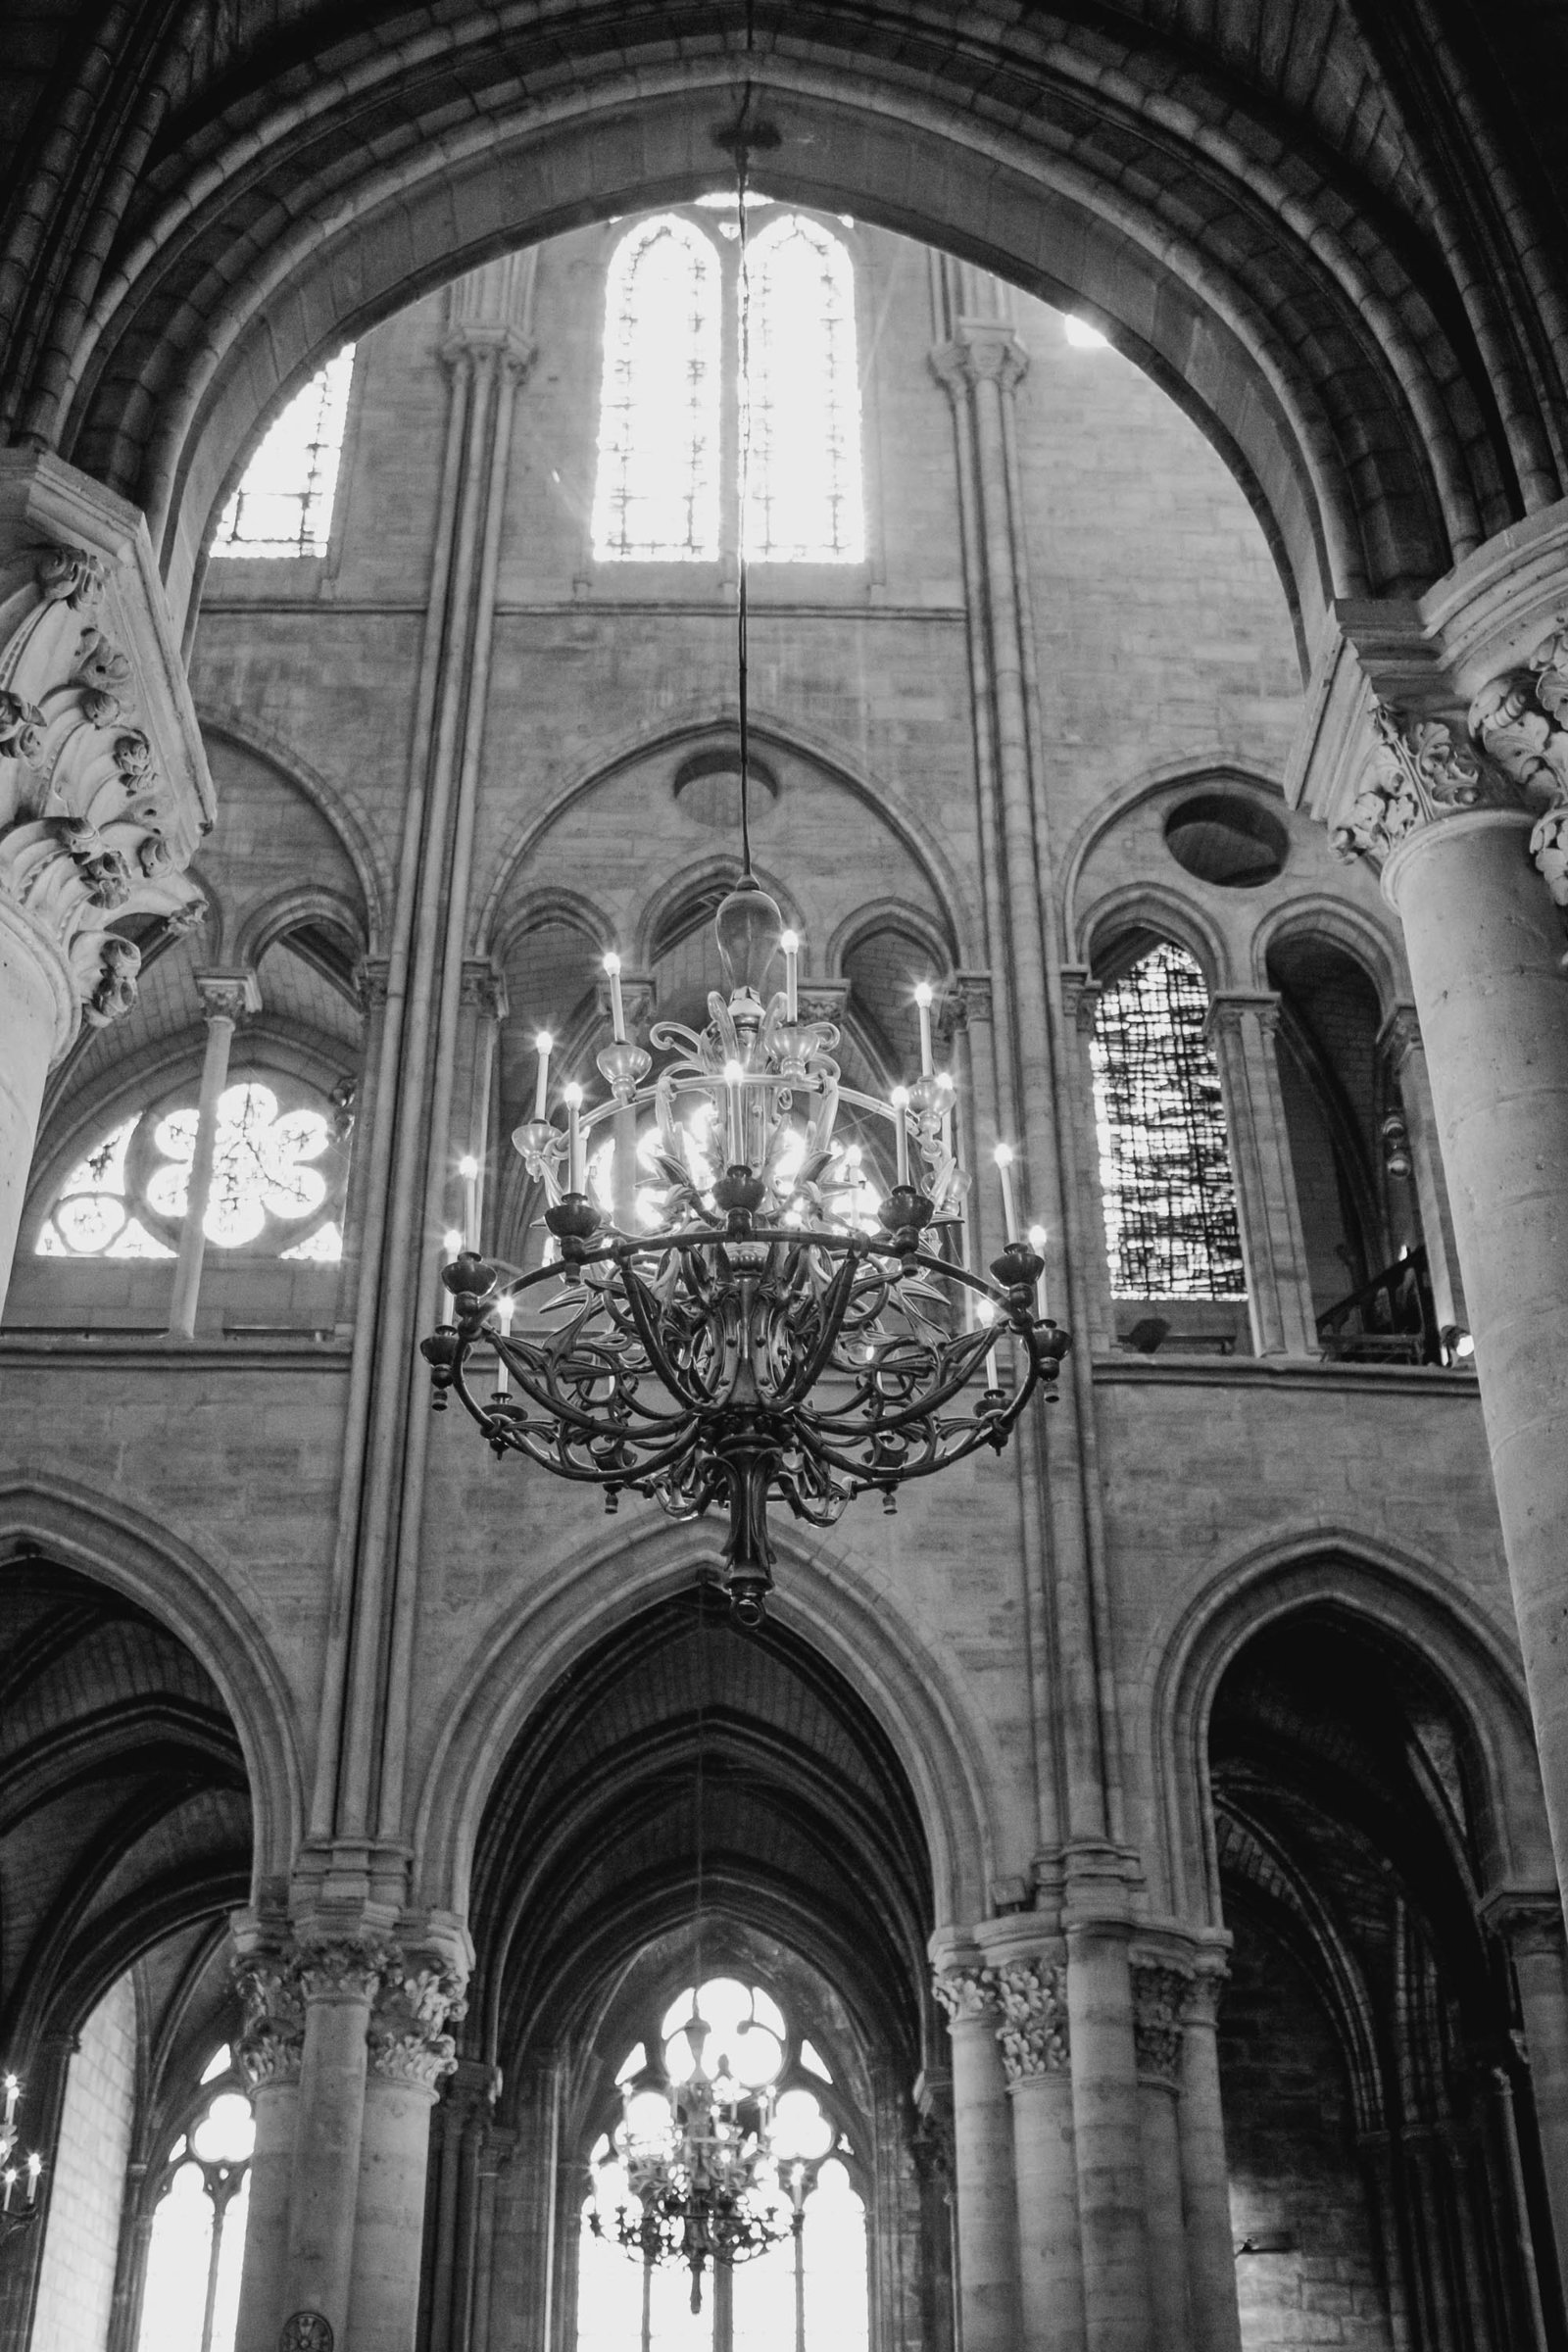 notre-dame-paris-france-travel-destination-wedding-kate-timbers-photography-1923